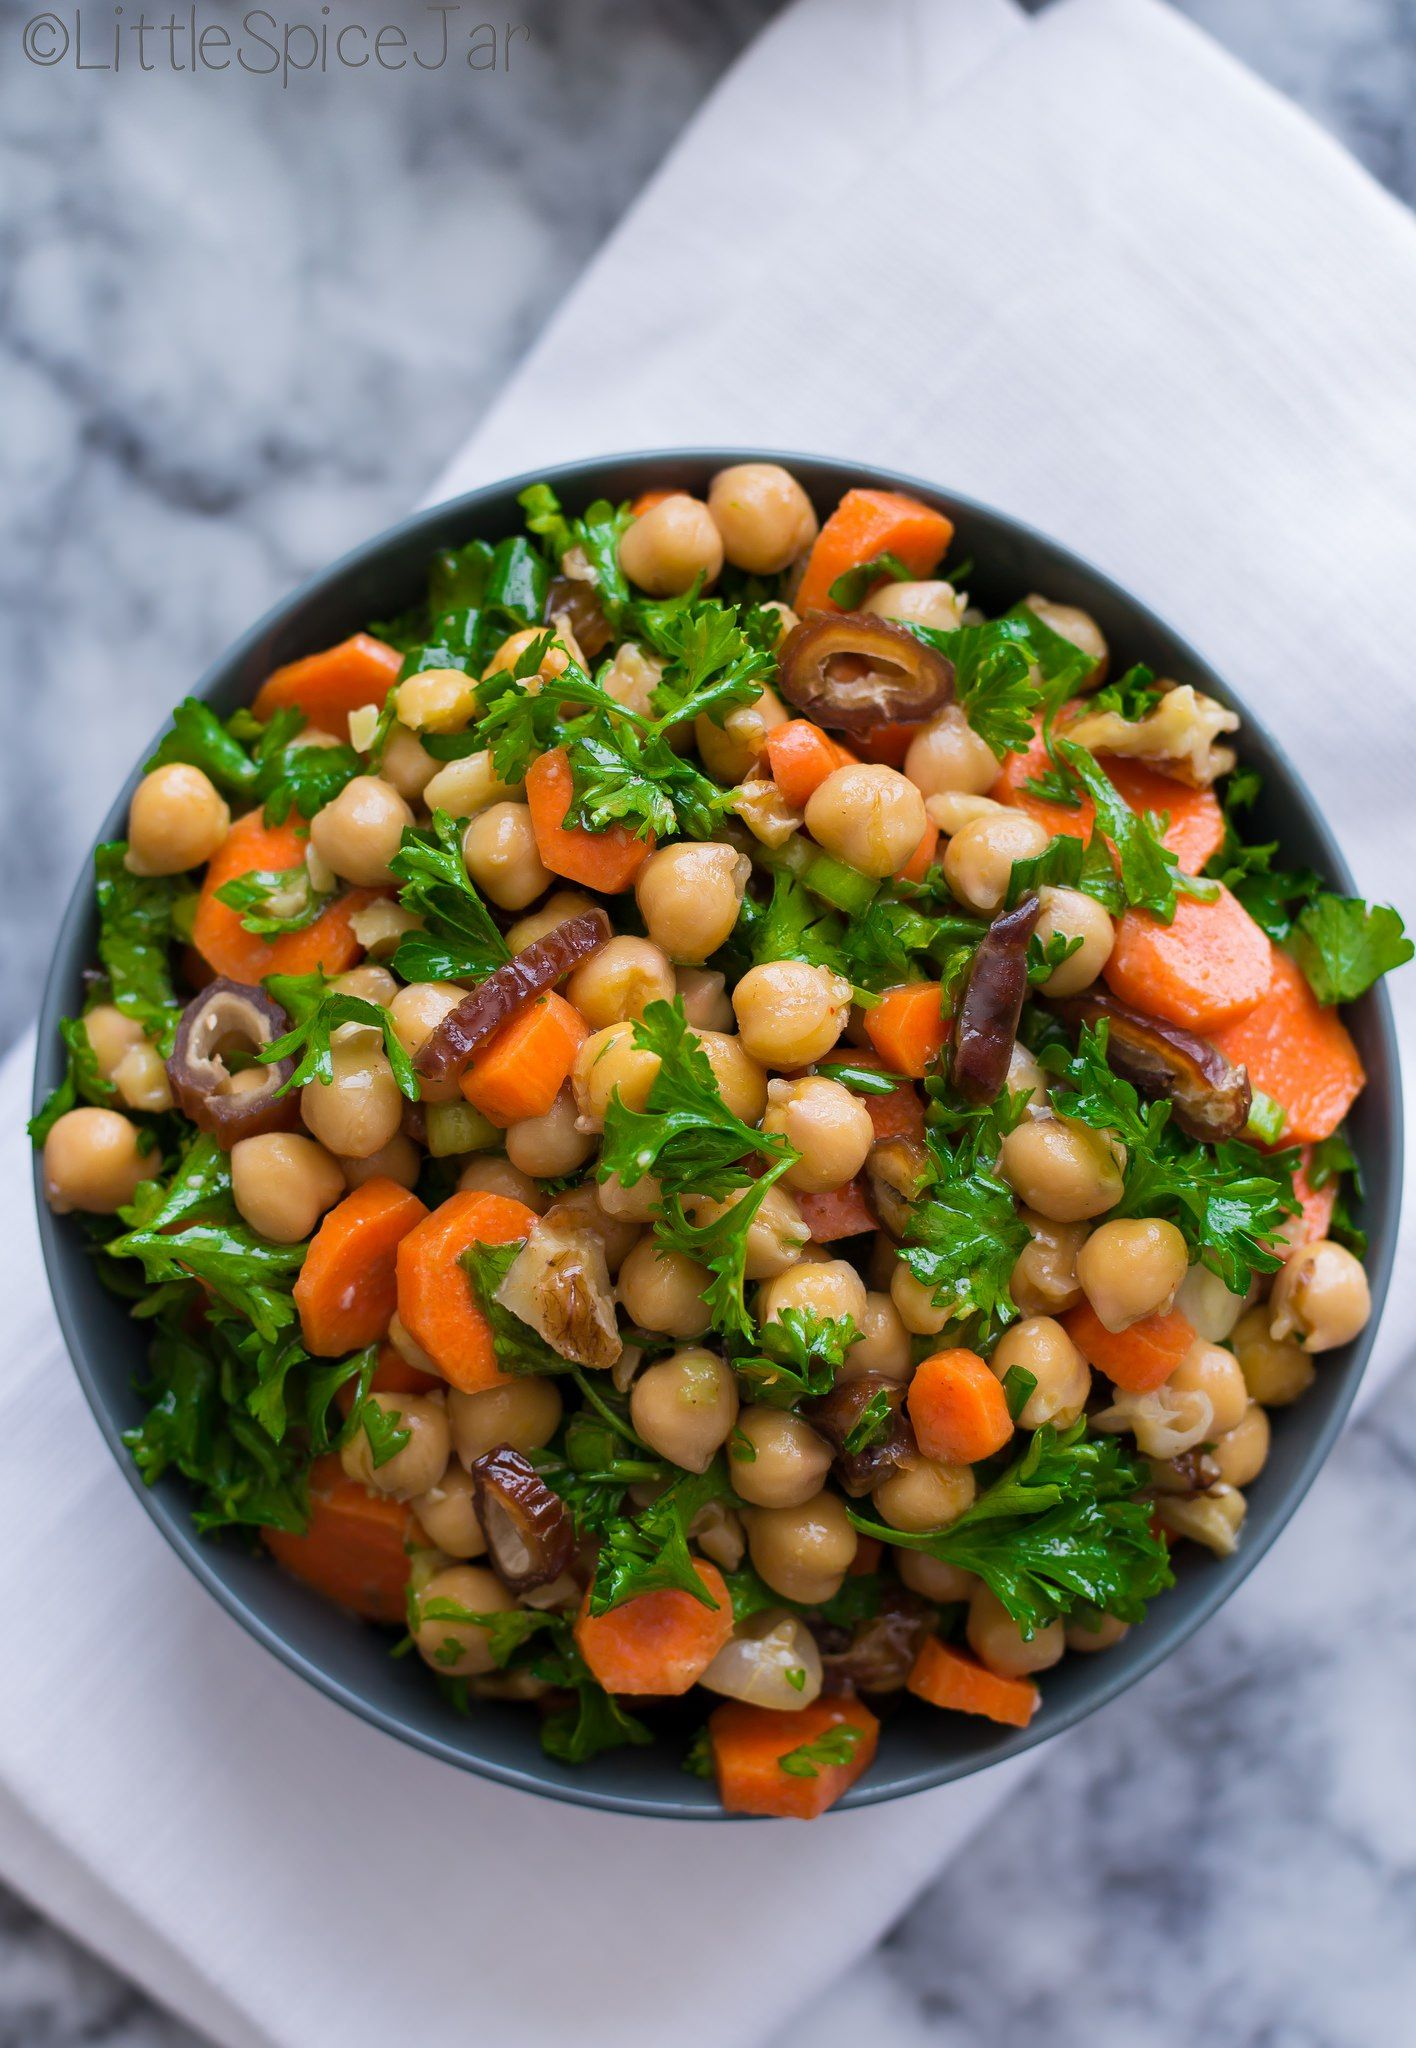 Moroccan carrot chickpea salad with only a few ingredients. Moroccan carrot chickpea salad take s only a few minutes to make and has a honey lemon dressing!